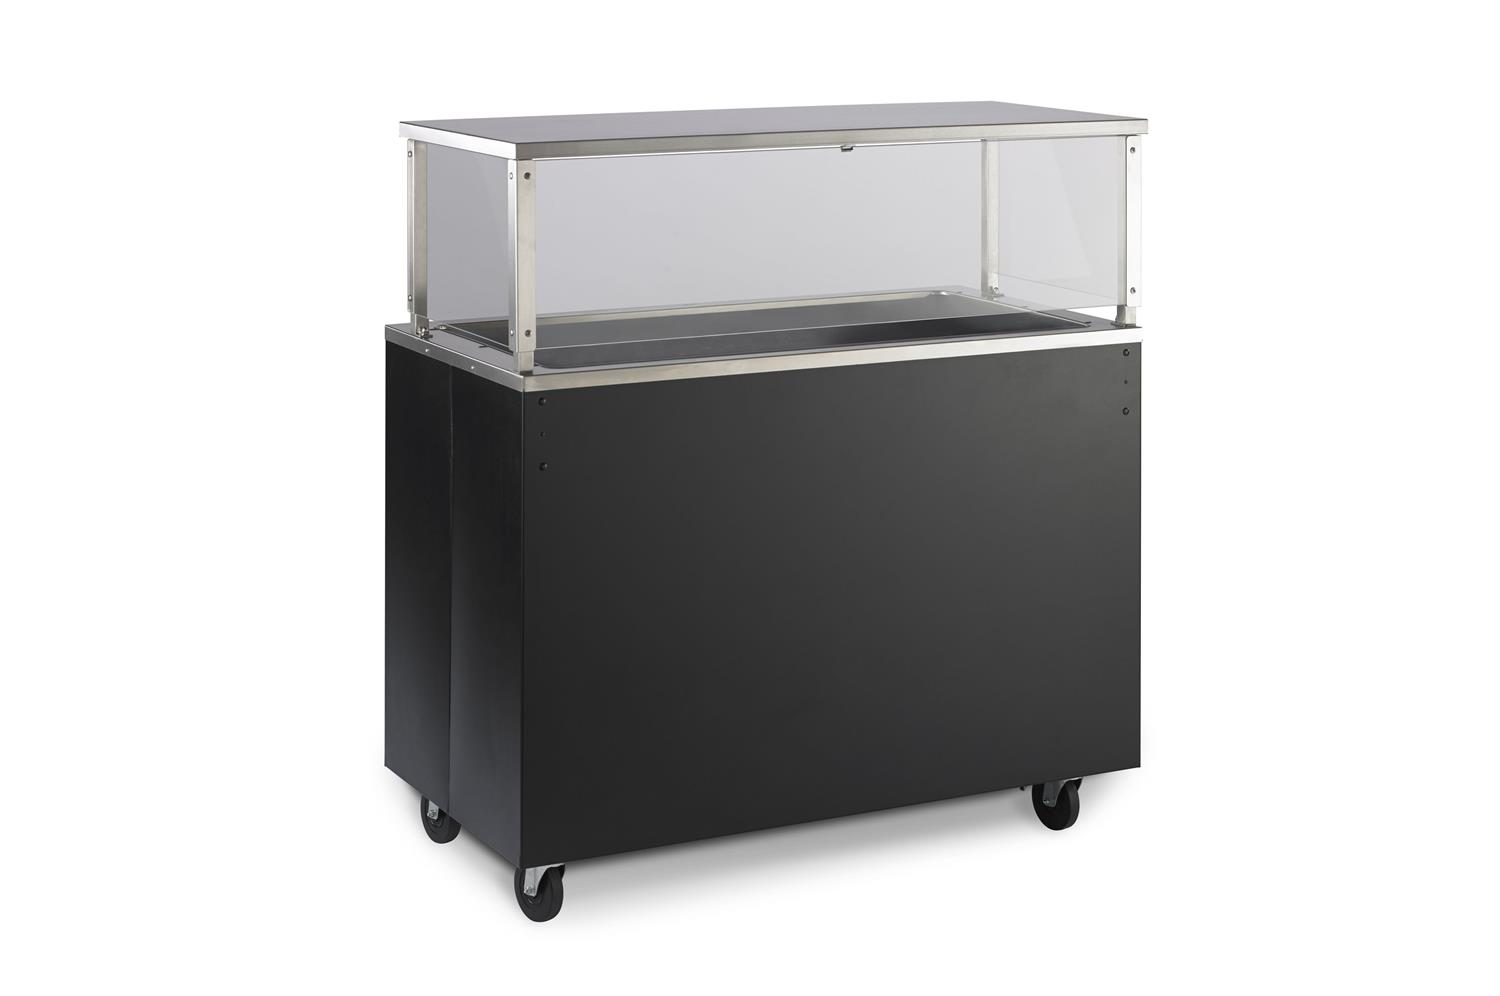 Vollrath 39736W Affordable Portable Cold Food Station - Cafeteria